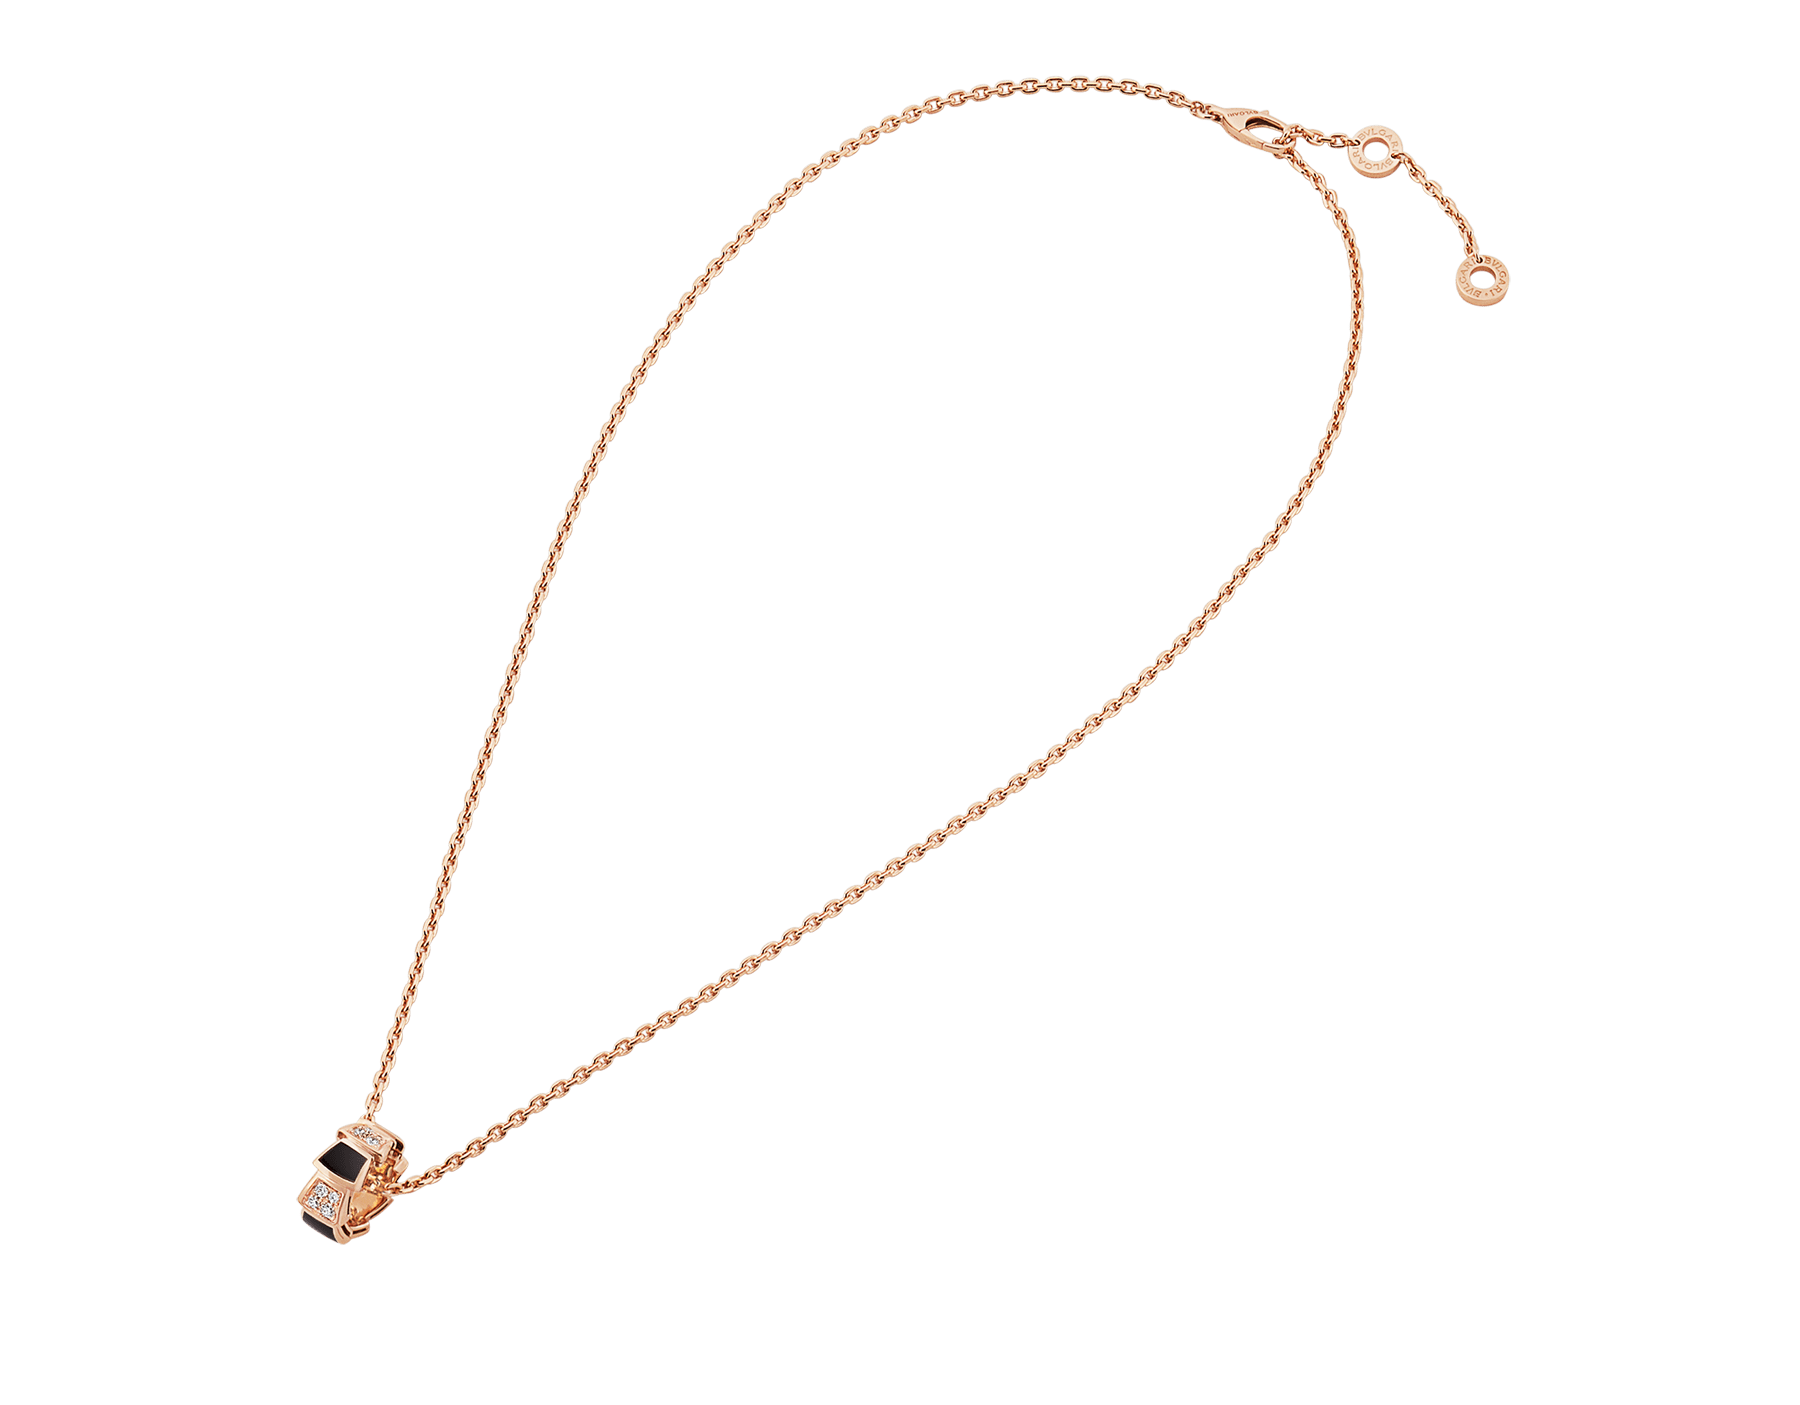 Serpenti Viper 18 kt rose gold necklace set with onyx elements and pavé diamonds (0.21 ct) on the pendant 356554 image 2